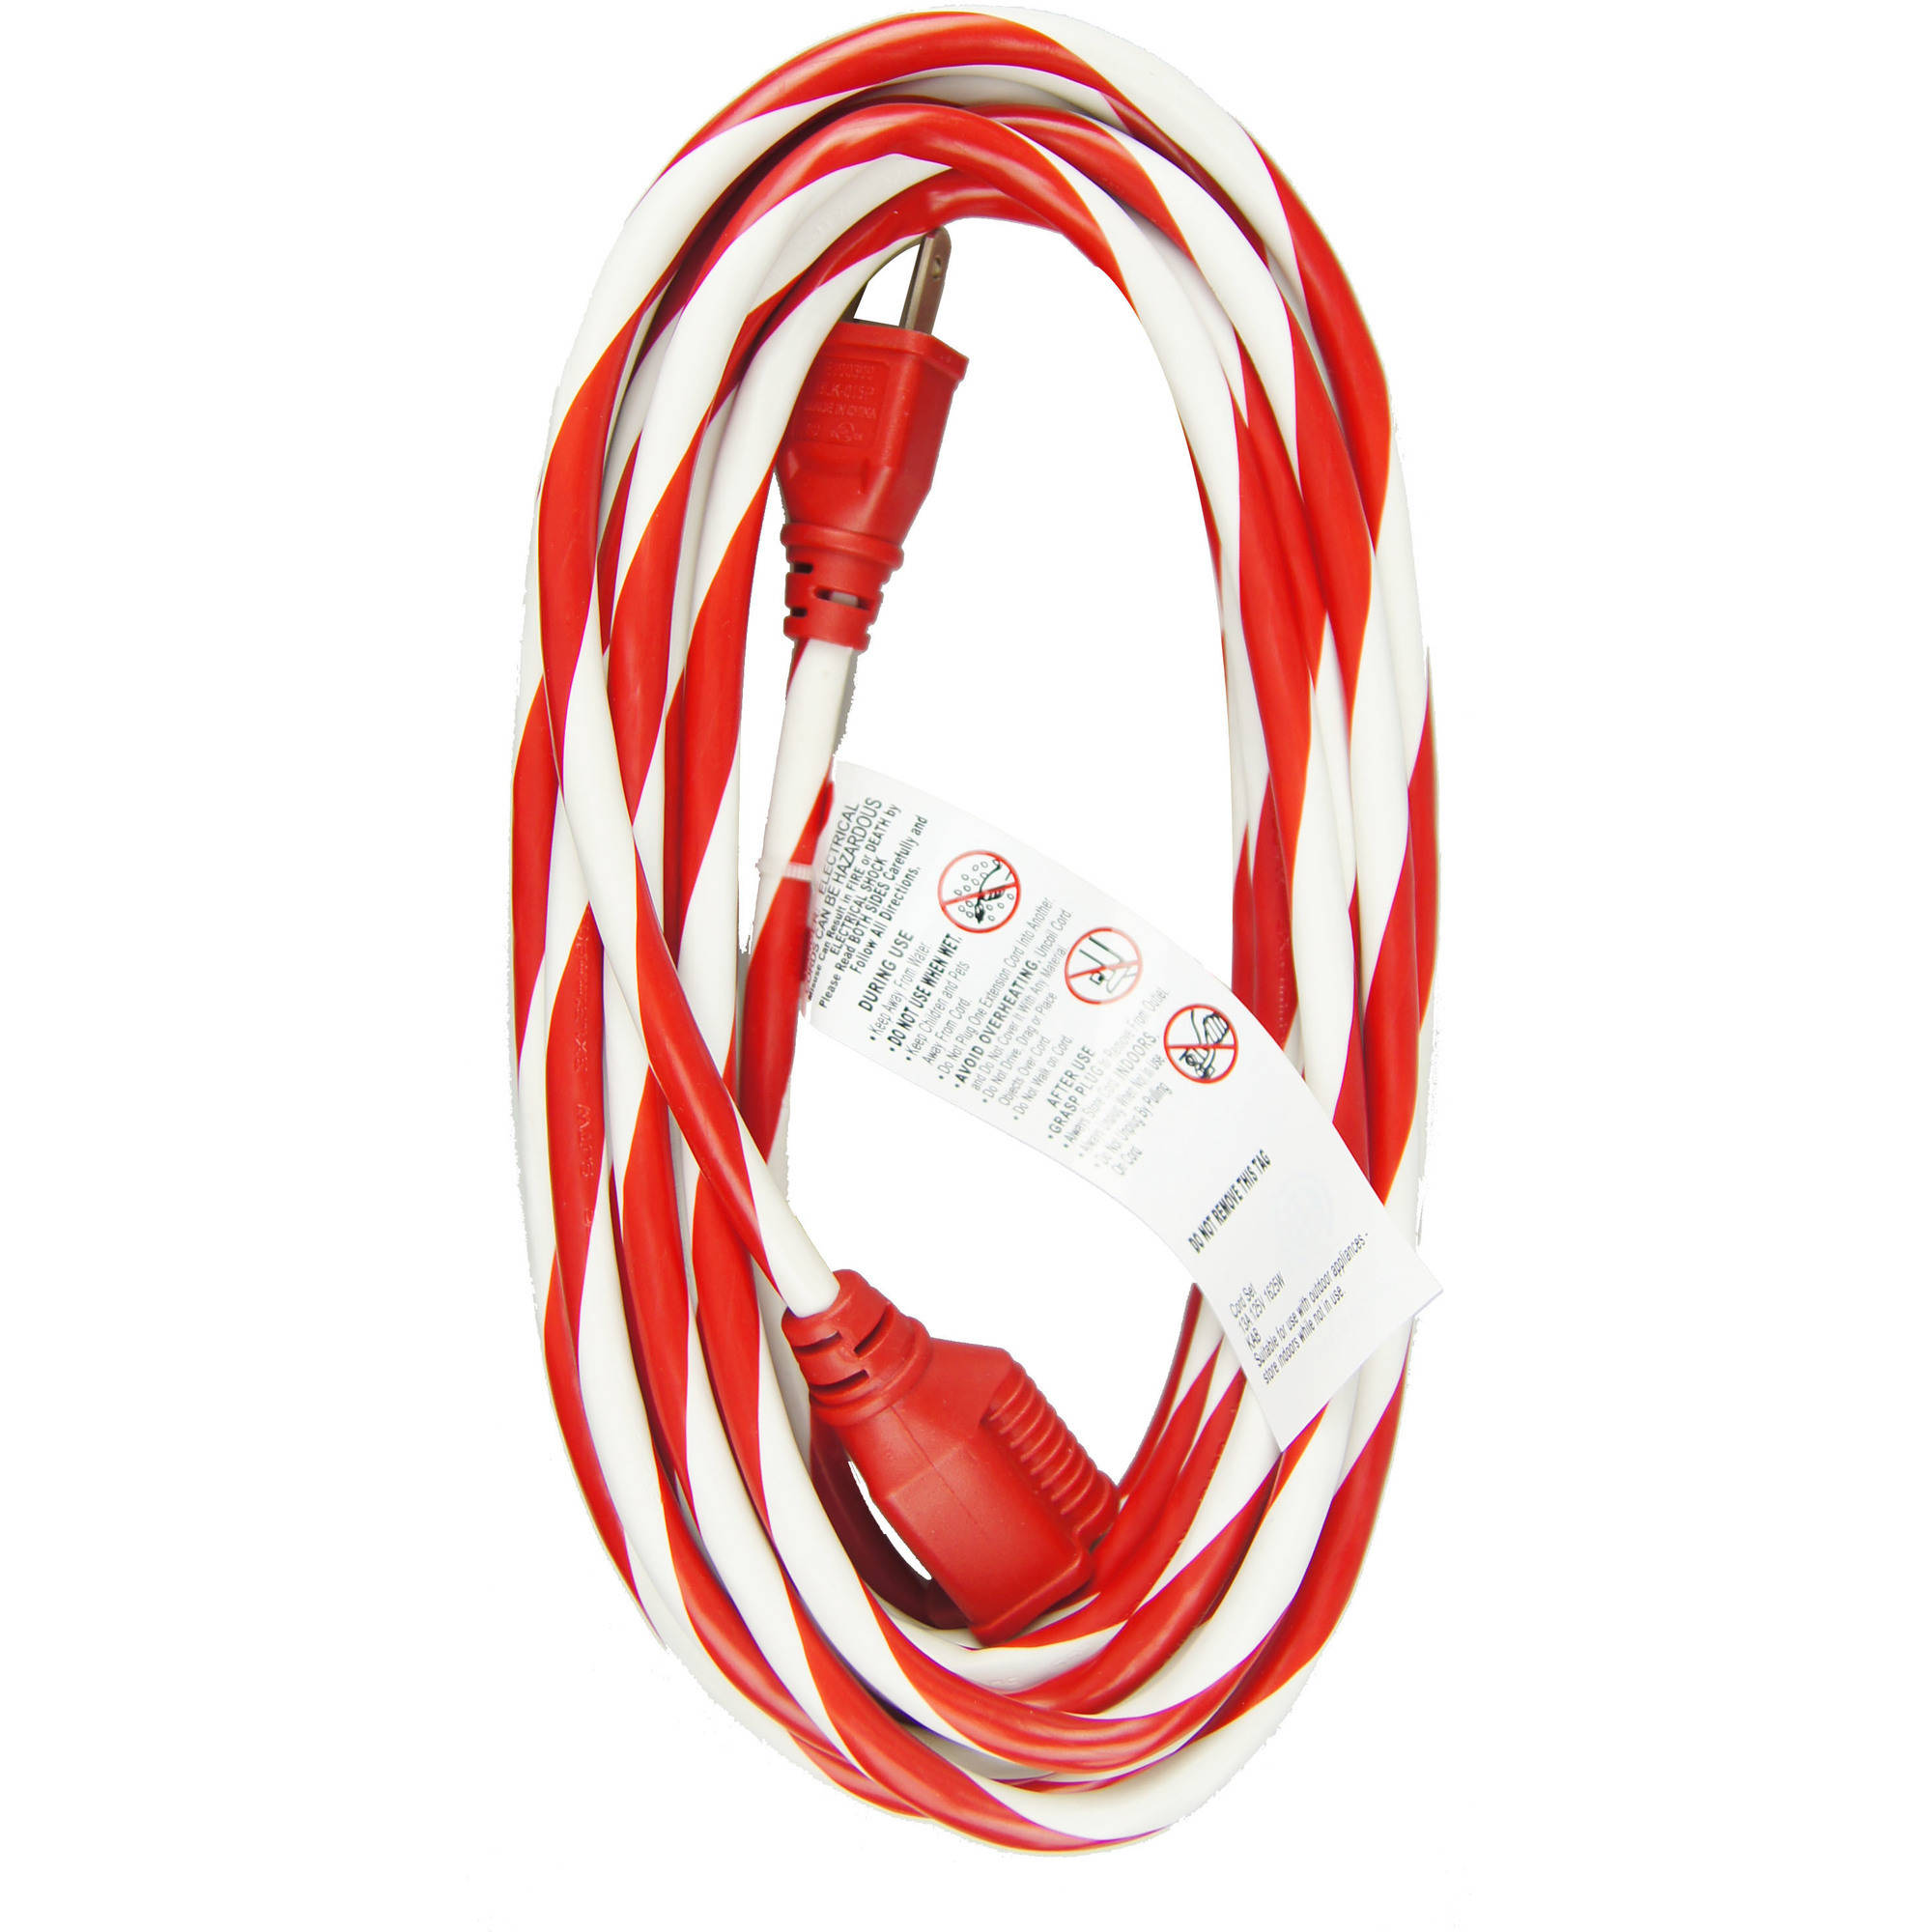 WorkChoice 25' 1-Outlet Outdoor Candy Cane Striped Extension Cord